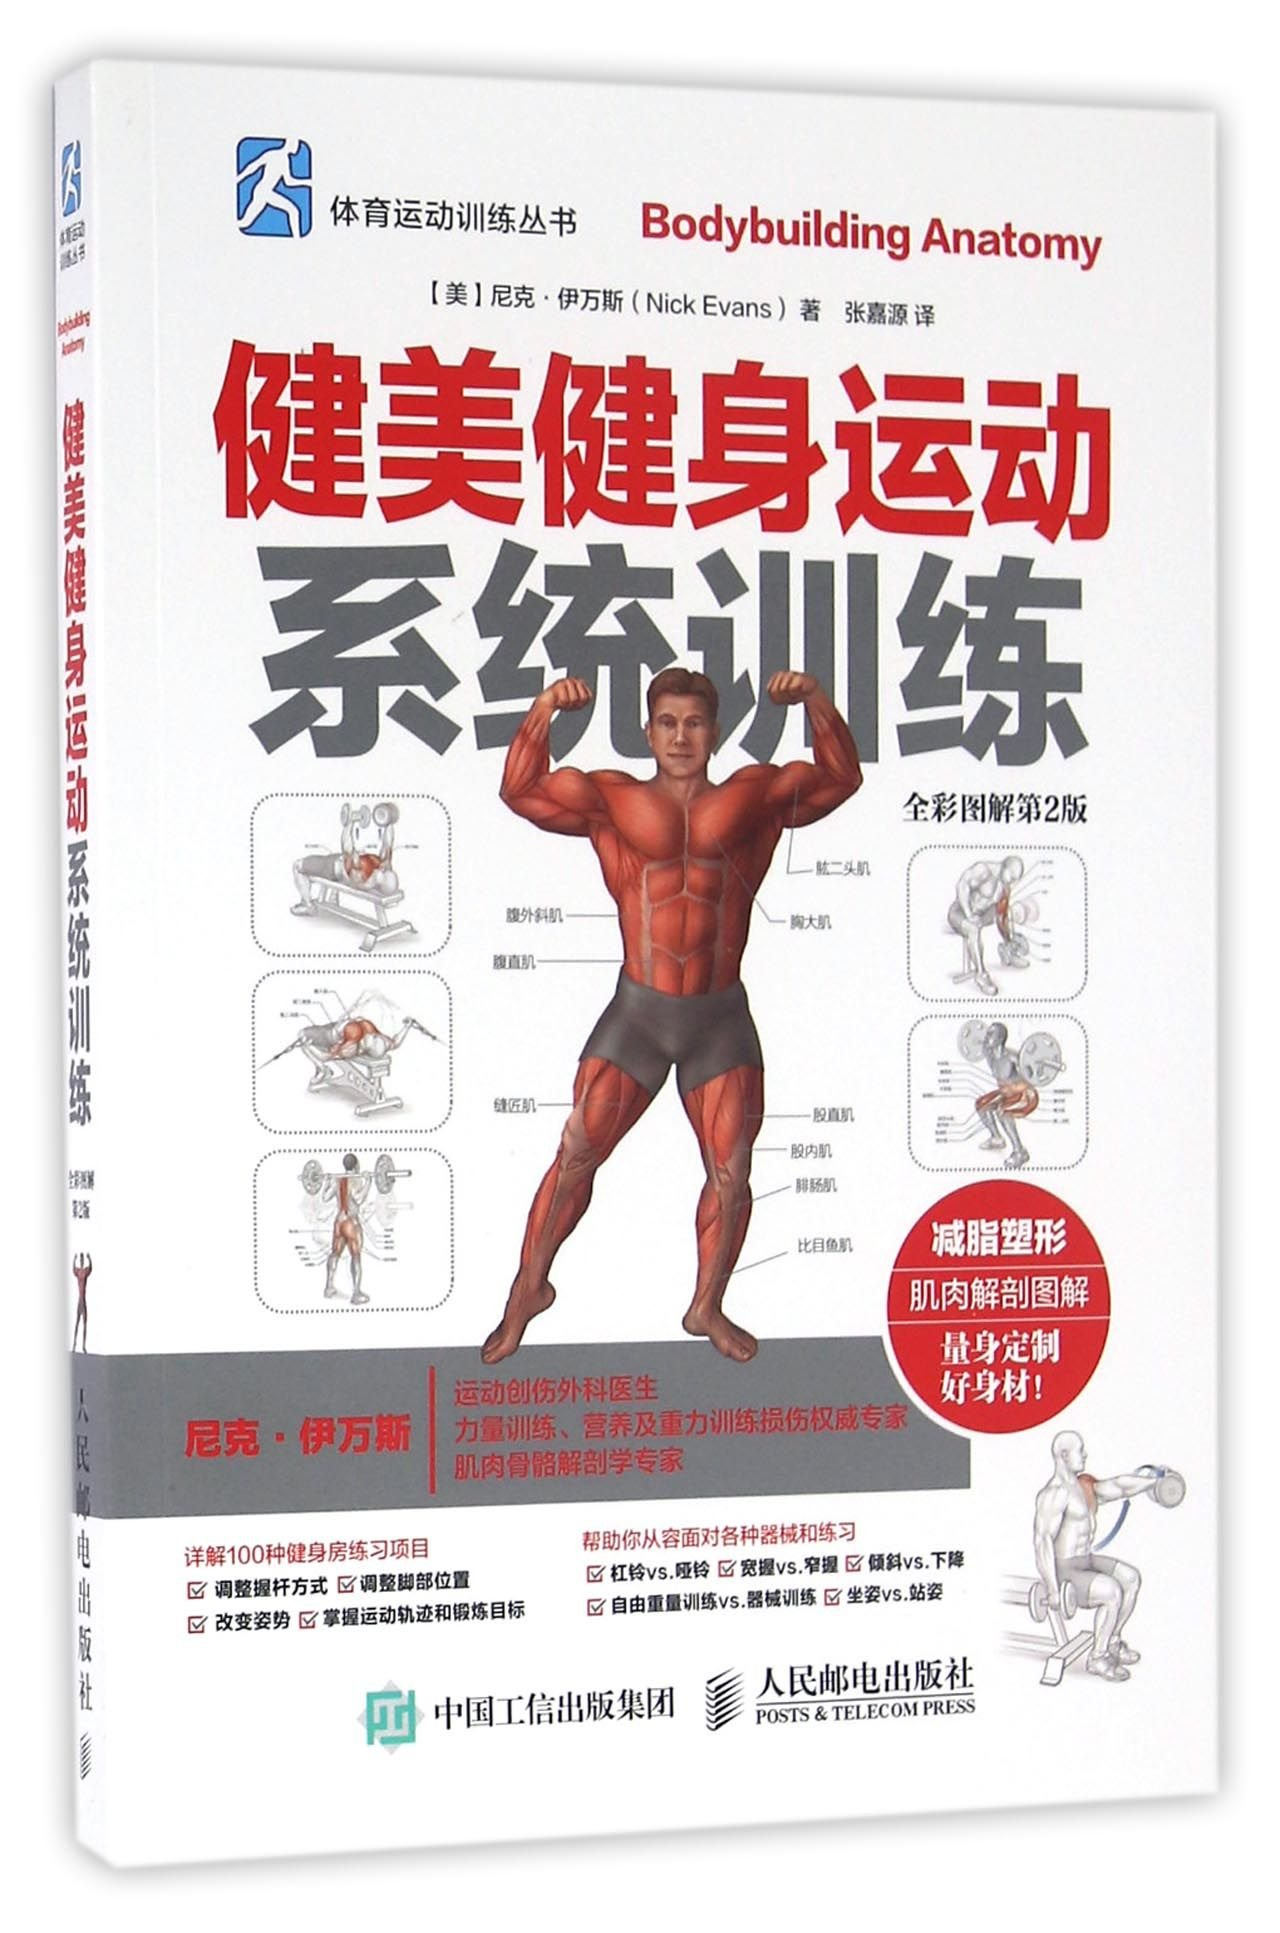 Bodybuilding Anatomy 2nd Edition (Chinese Edition): Nicholas Evans ...